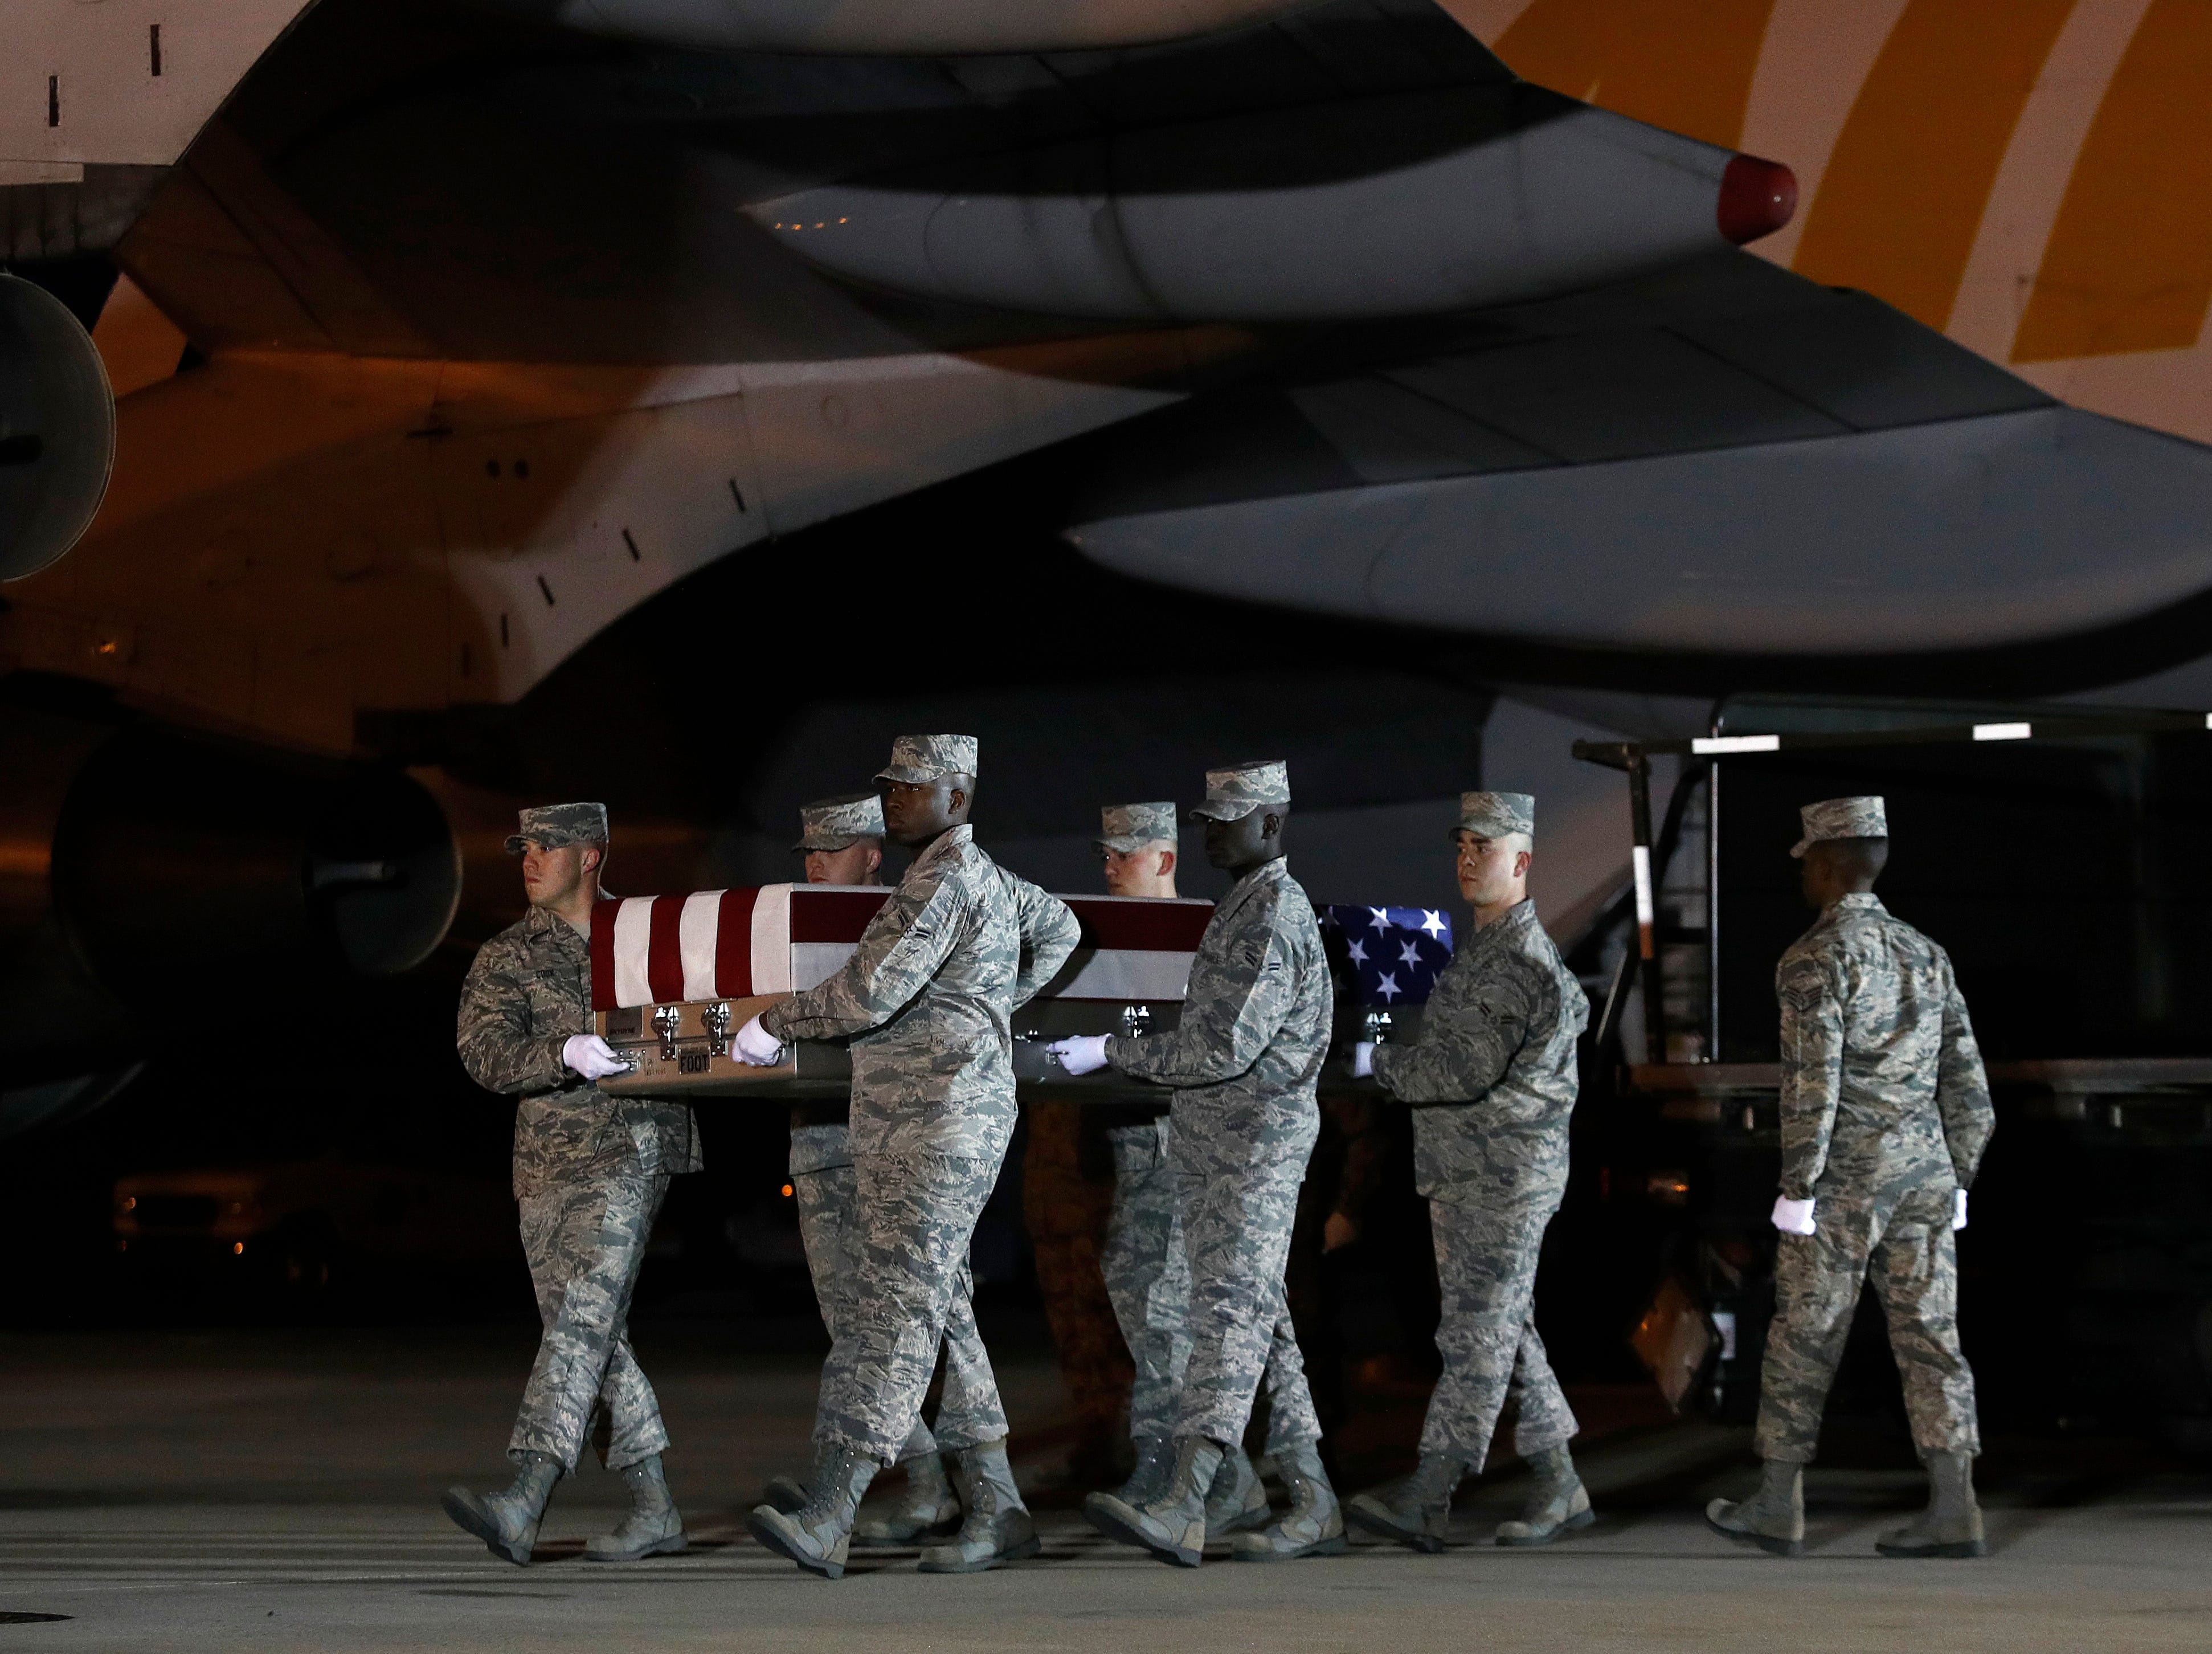 A U.S. Air Force carry team moves a transfer case containing the remains of Staff Sgt. Dylan J. Elchin, Friday, Nov. 30, 2018, at Dover Air Force Base, Del. According to the Department of Defense, Elchin, 25, of Hookstown, Pa., was killed Nov. 27, 2018, by a roadside bomb in Andar, Ghazni Province, Afghanistan.